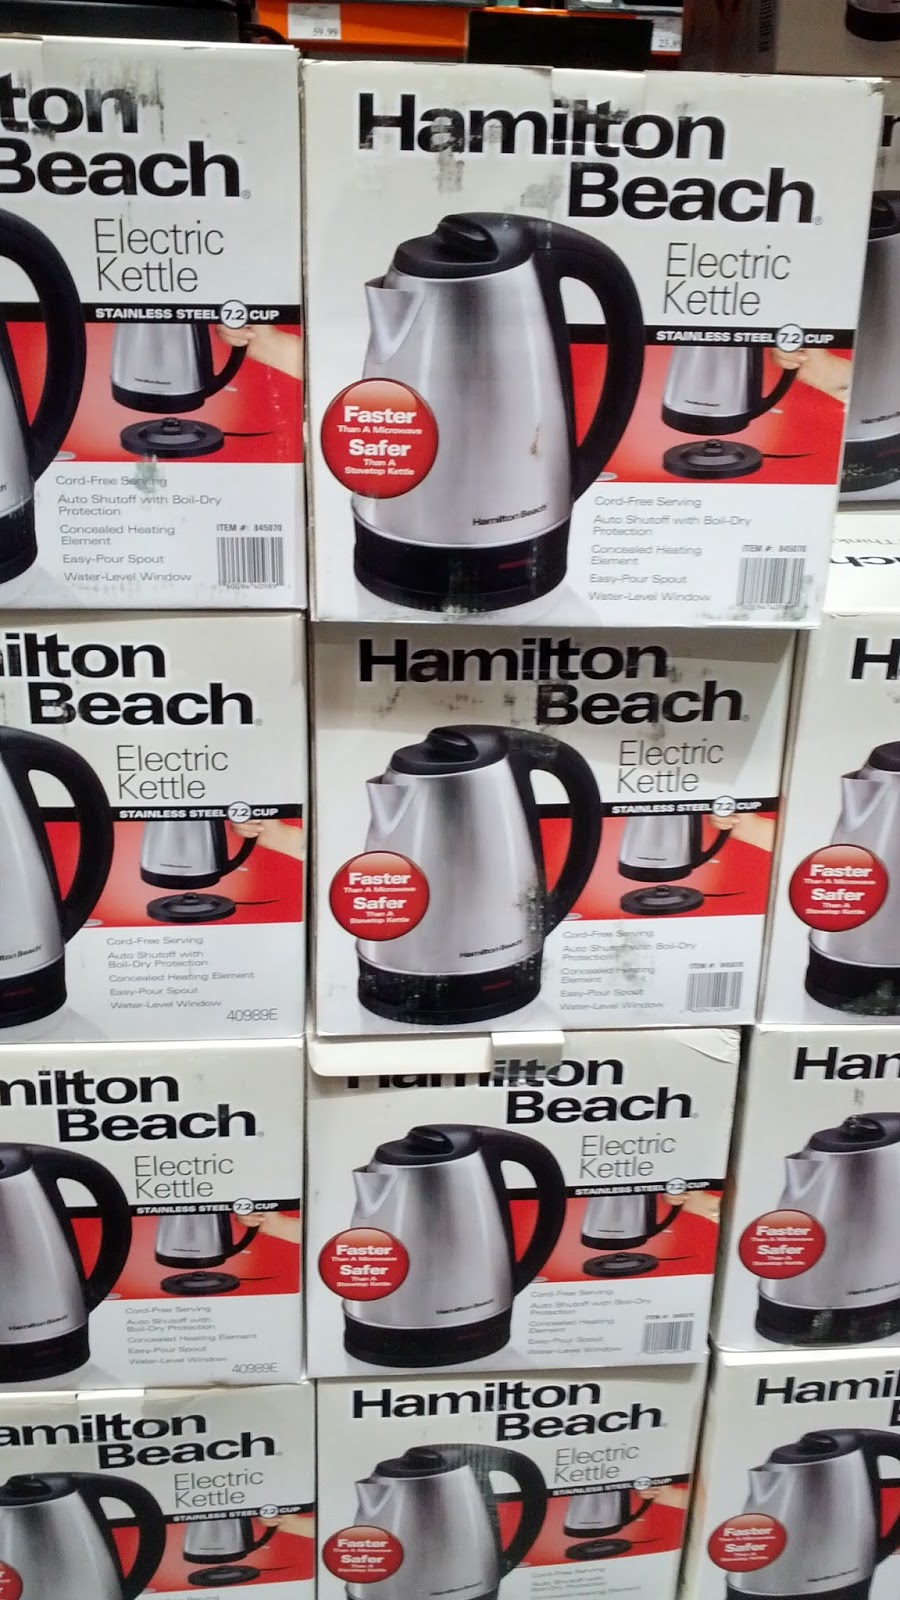 Hamilton Beach Stainless Steel Electric Kettle Model